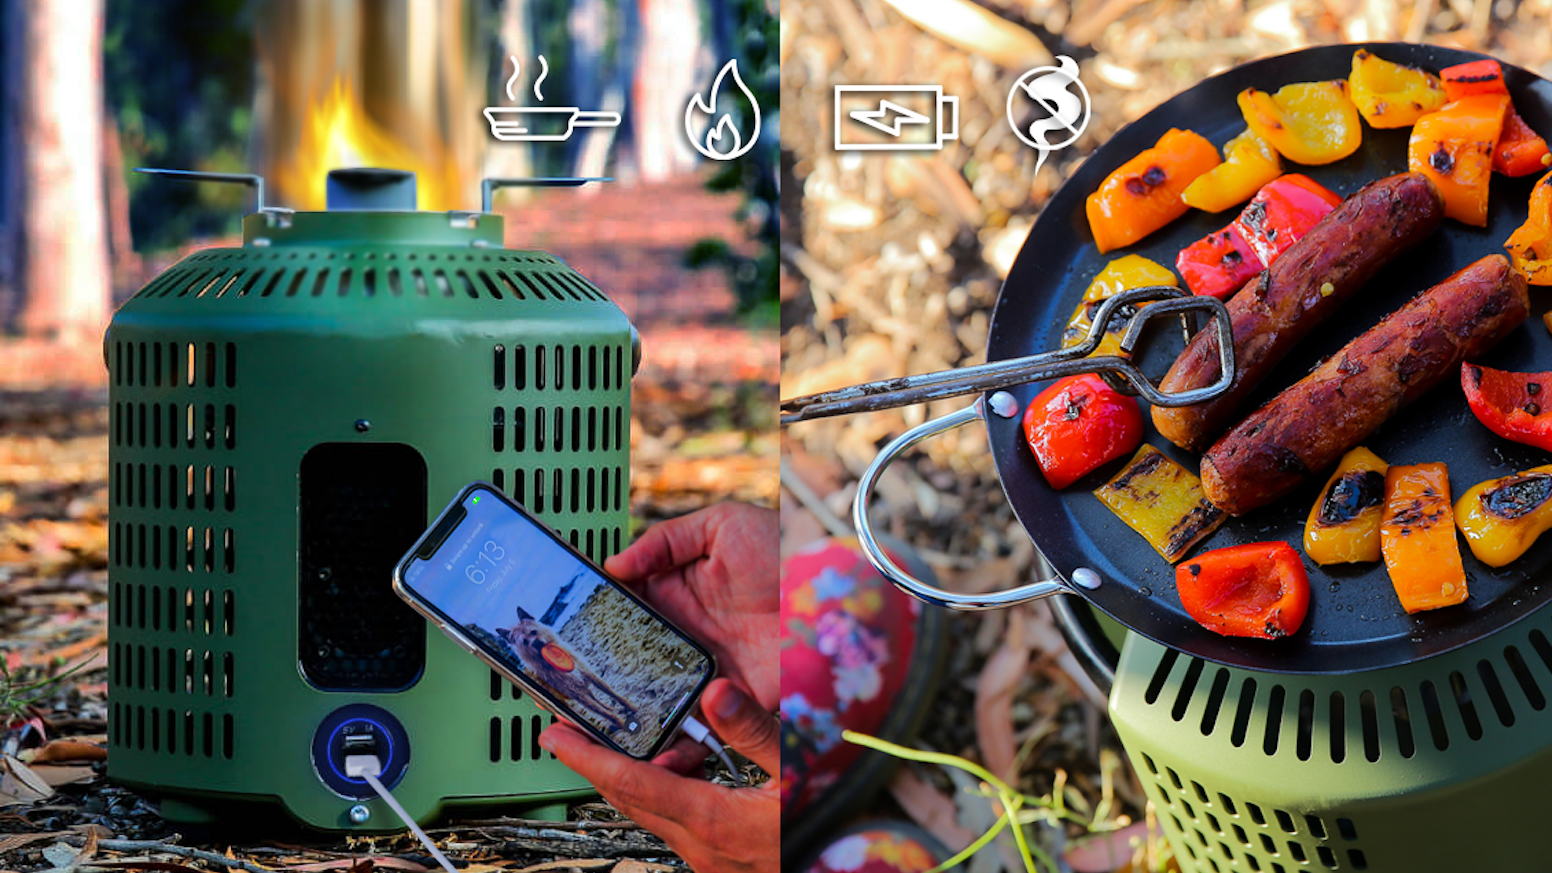 A patented cooking & heating stove that turns fire into 10 Watts of power for USB gadgets - for when you need a charge in the woods.